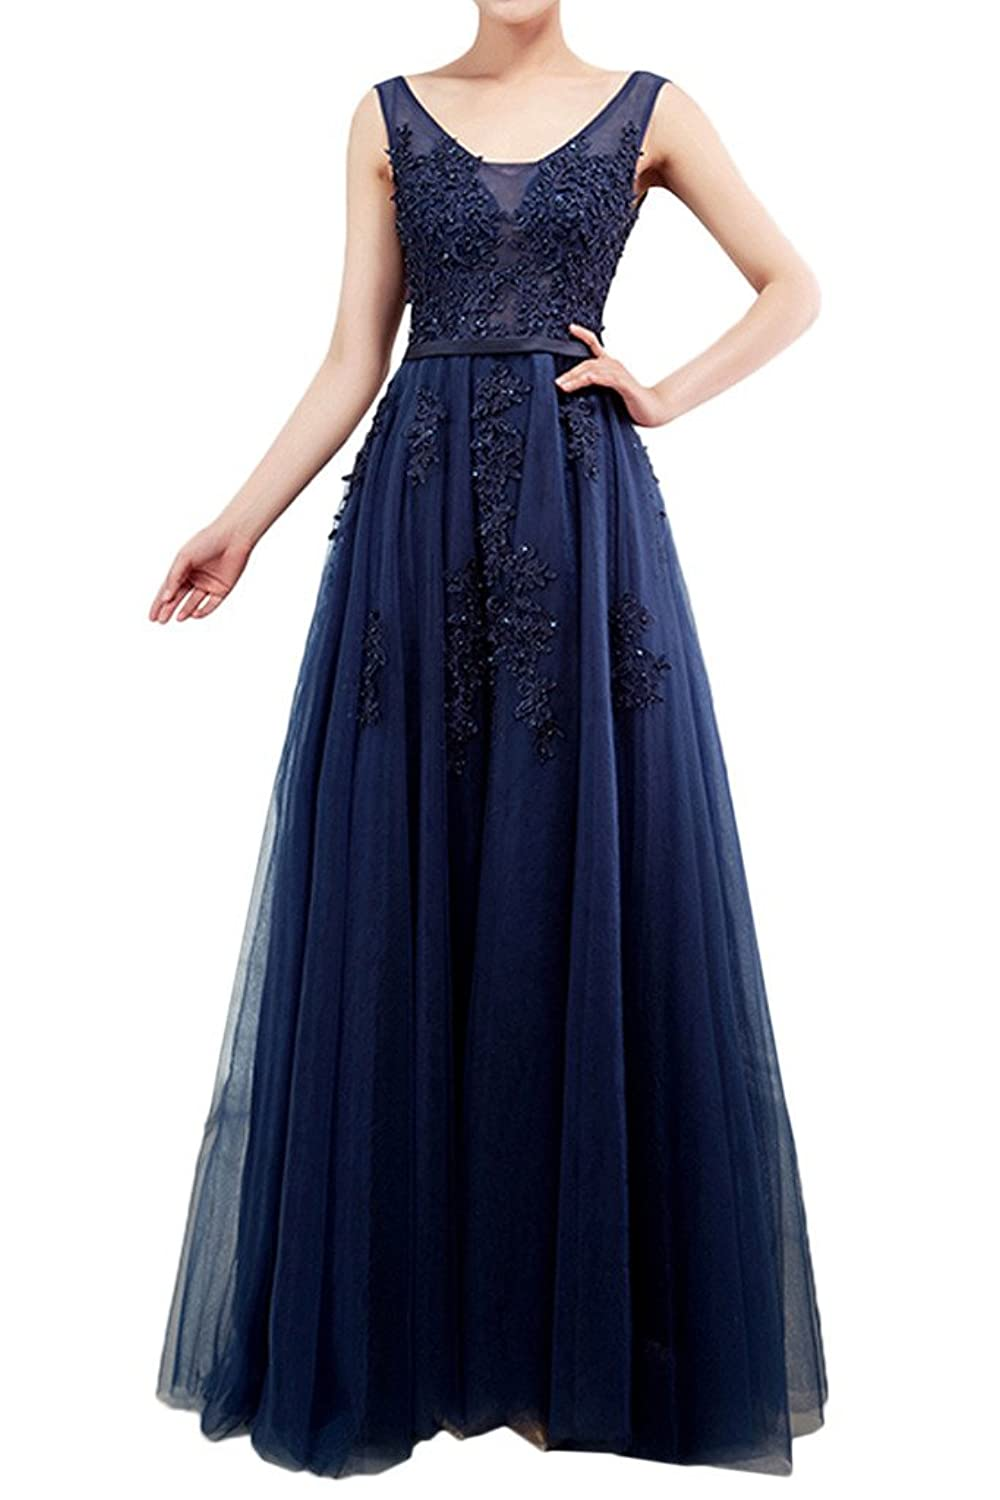 Amazon.com: Gorgeous Bridal Exquisite Floor Length Formal Gowns for Party Prom Lace: Clothing